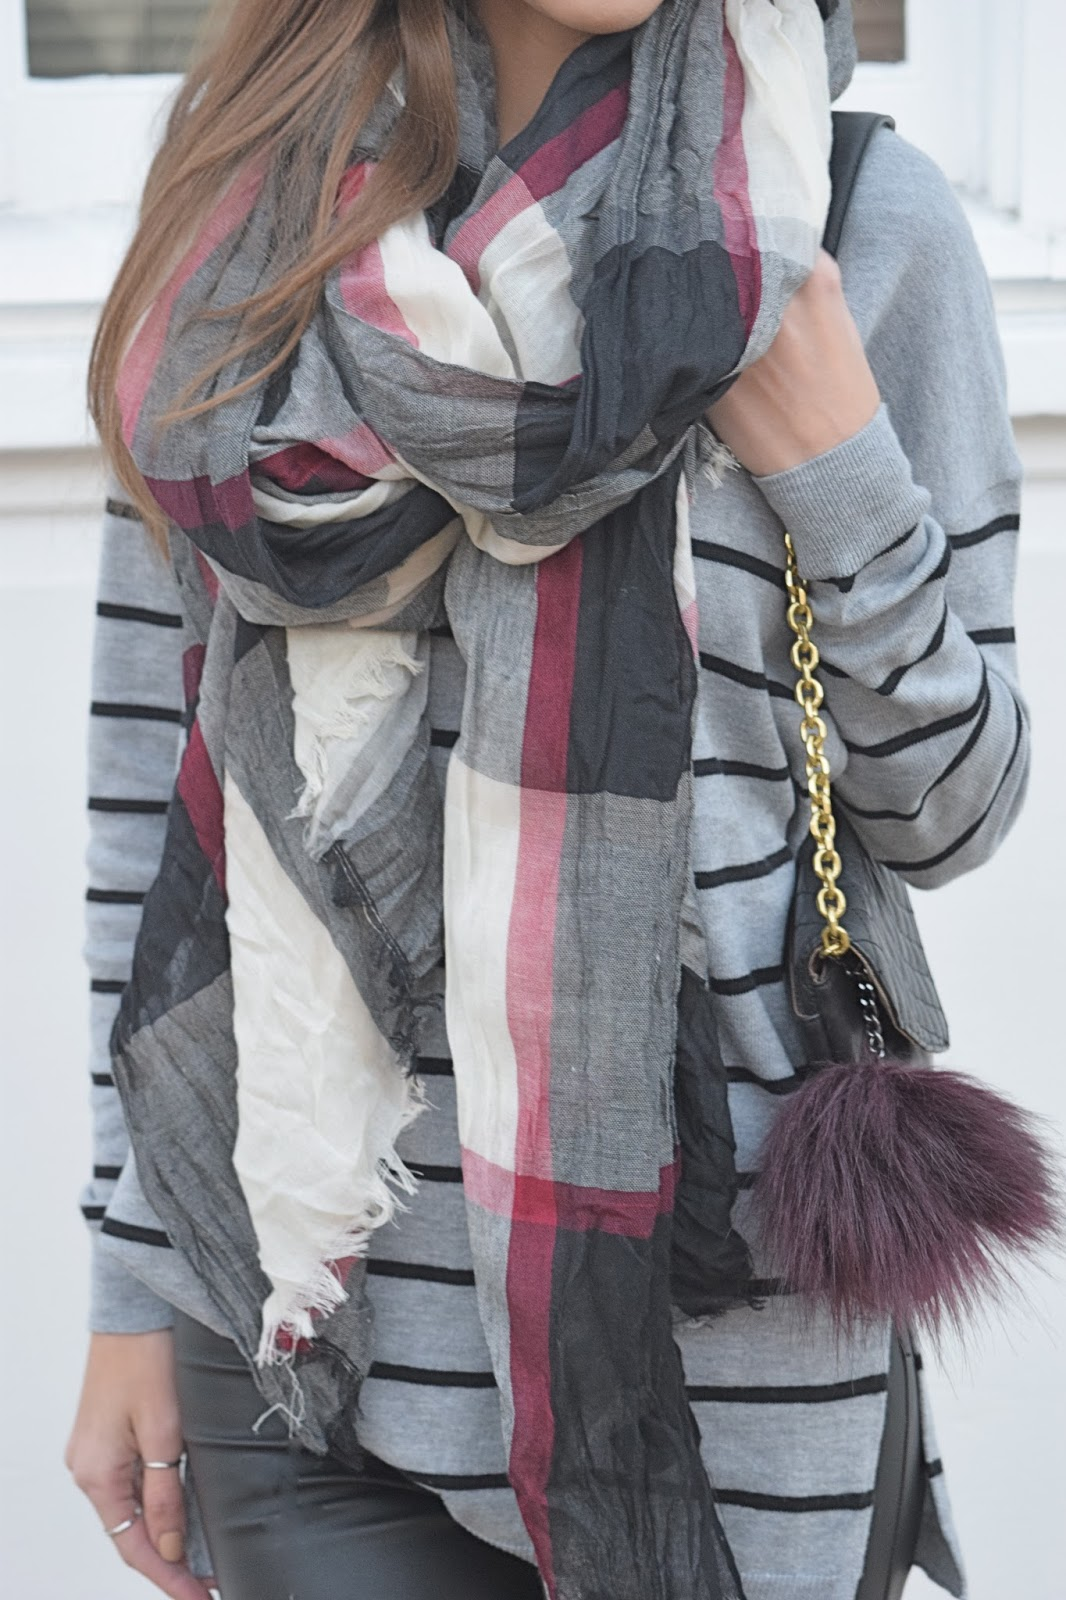 Wearing Old Navy Tunic Striped Sweater. Striped Sweater, Plaid Scarg, Fur keychain on Purse